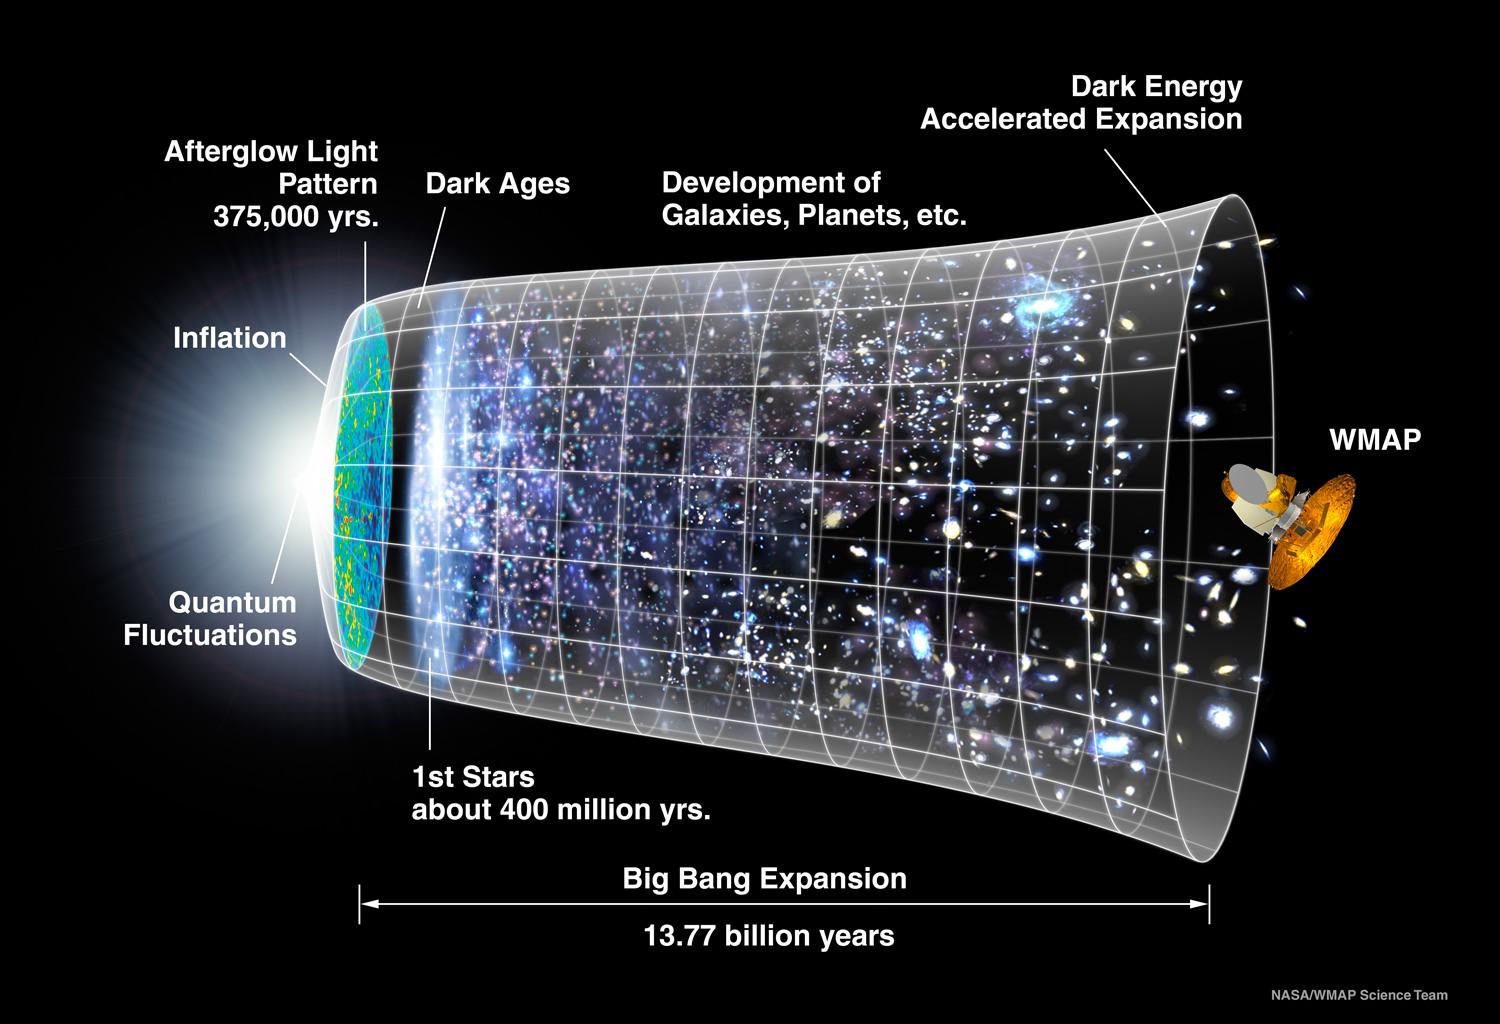 """A representation of the evolution of the universe over 13.77 billion years. The far left depicts the earliest moment we can now probe, when a period of """"inflation"""" produced a burst of exponential growth in the universe. (Size is depicted by the vertical extent of the grid in this graphic.) For the next several billion years, the expansion of the universe gradually slowed down as the matter in the universe pulled on itself via gravity. More recently, the expansion has begun to speed up again as the repulsive effects of dark energy have come to dominate the expansion of the universe. The afterglow light seen by WMAP was emitted about 375,000 years after inflation and has traversed the universe largely unimpeded since then. The conditions of earlier times are imprinted on this light; it also forms a backlight for later developments of the universe. Image Credit: NASA / WMAP Science Team"""